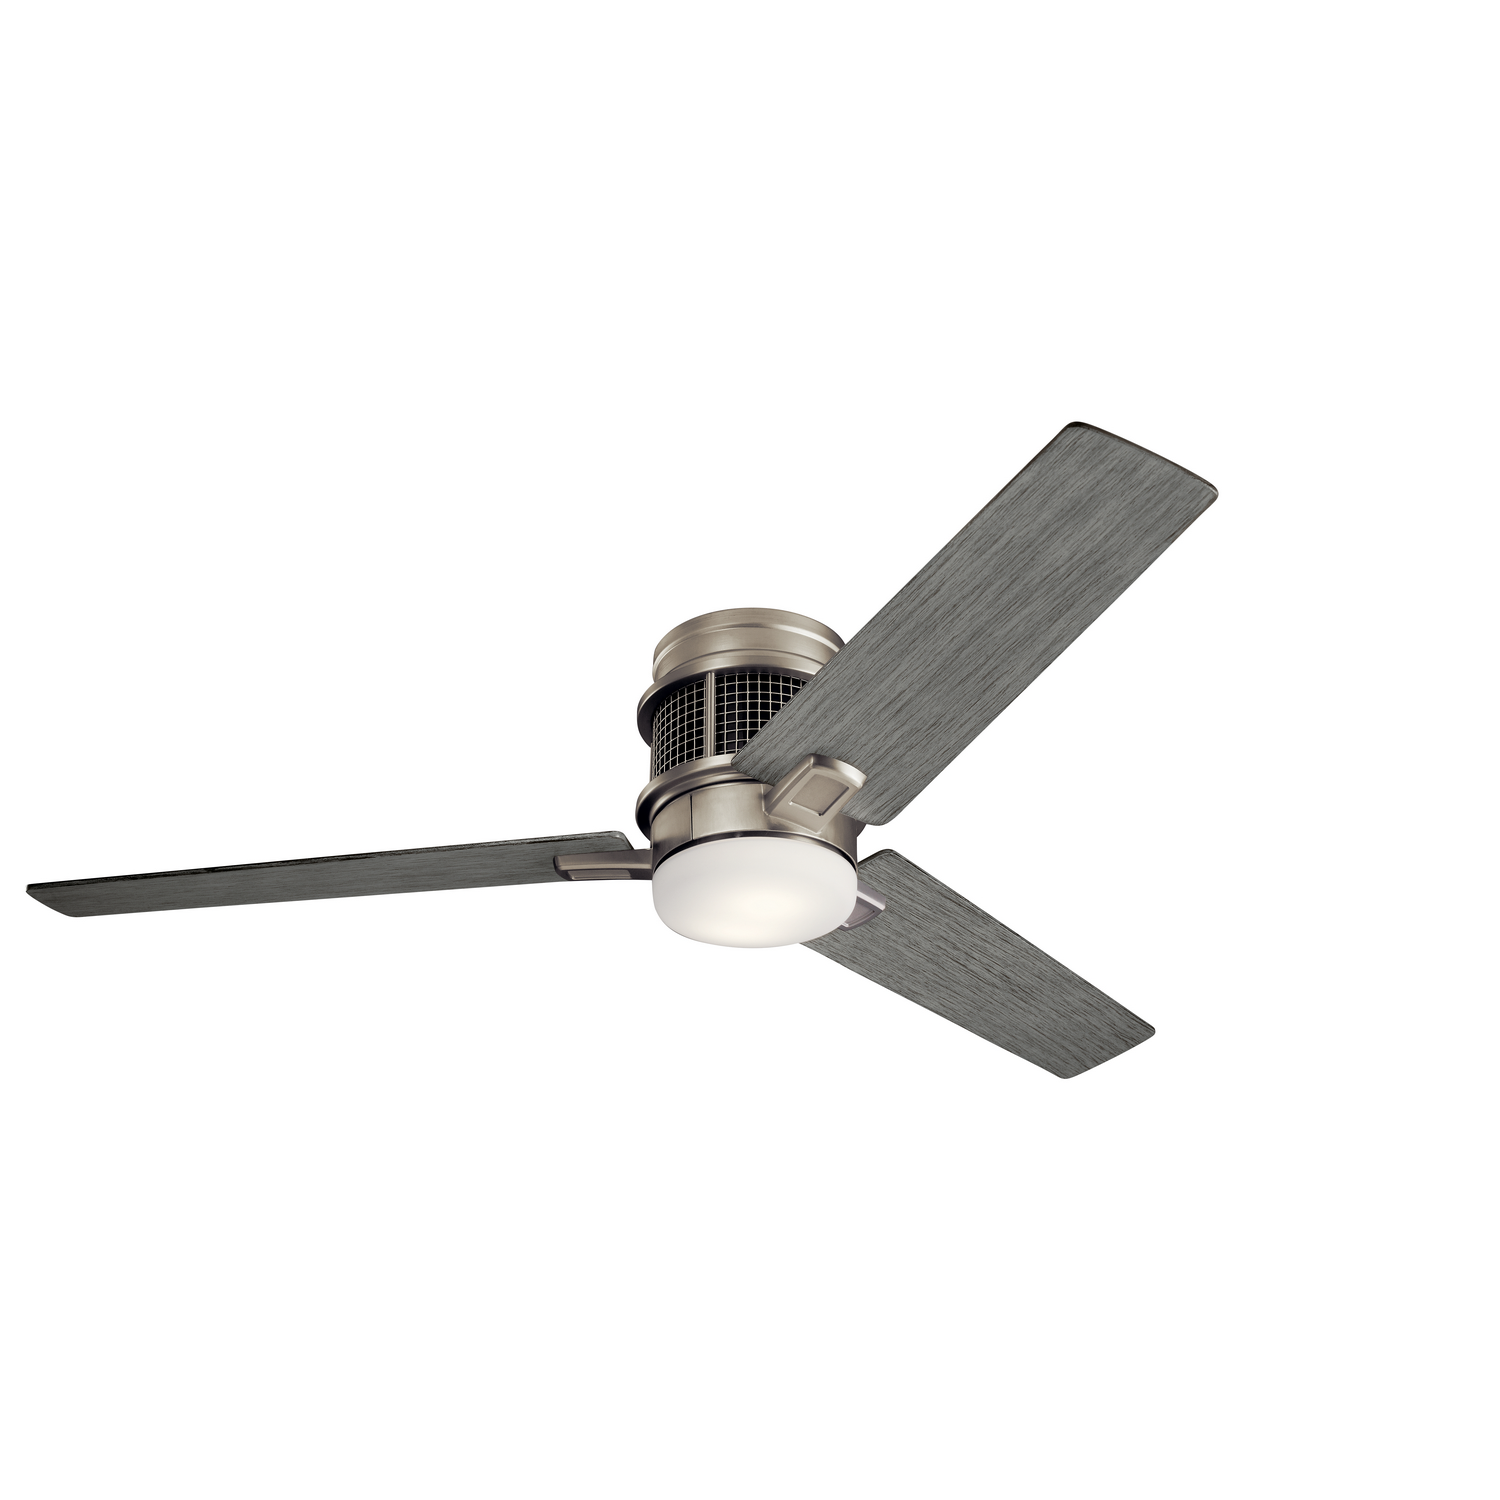 52 inchCeiling Fan from the Chiara collection by Kichler 300352NI